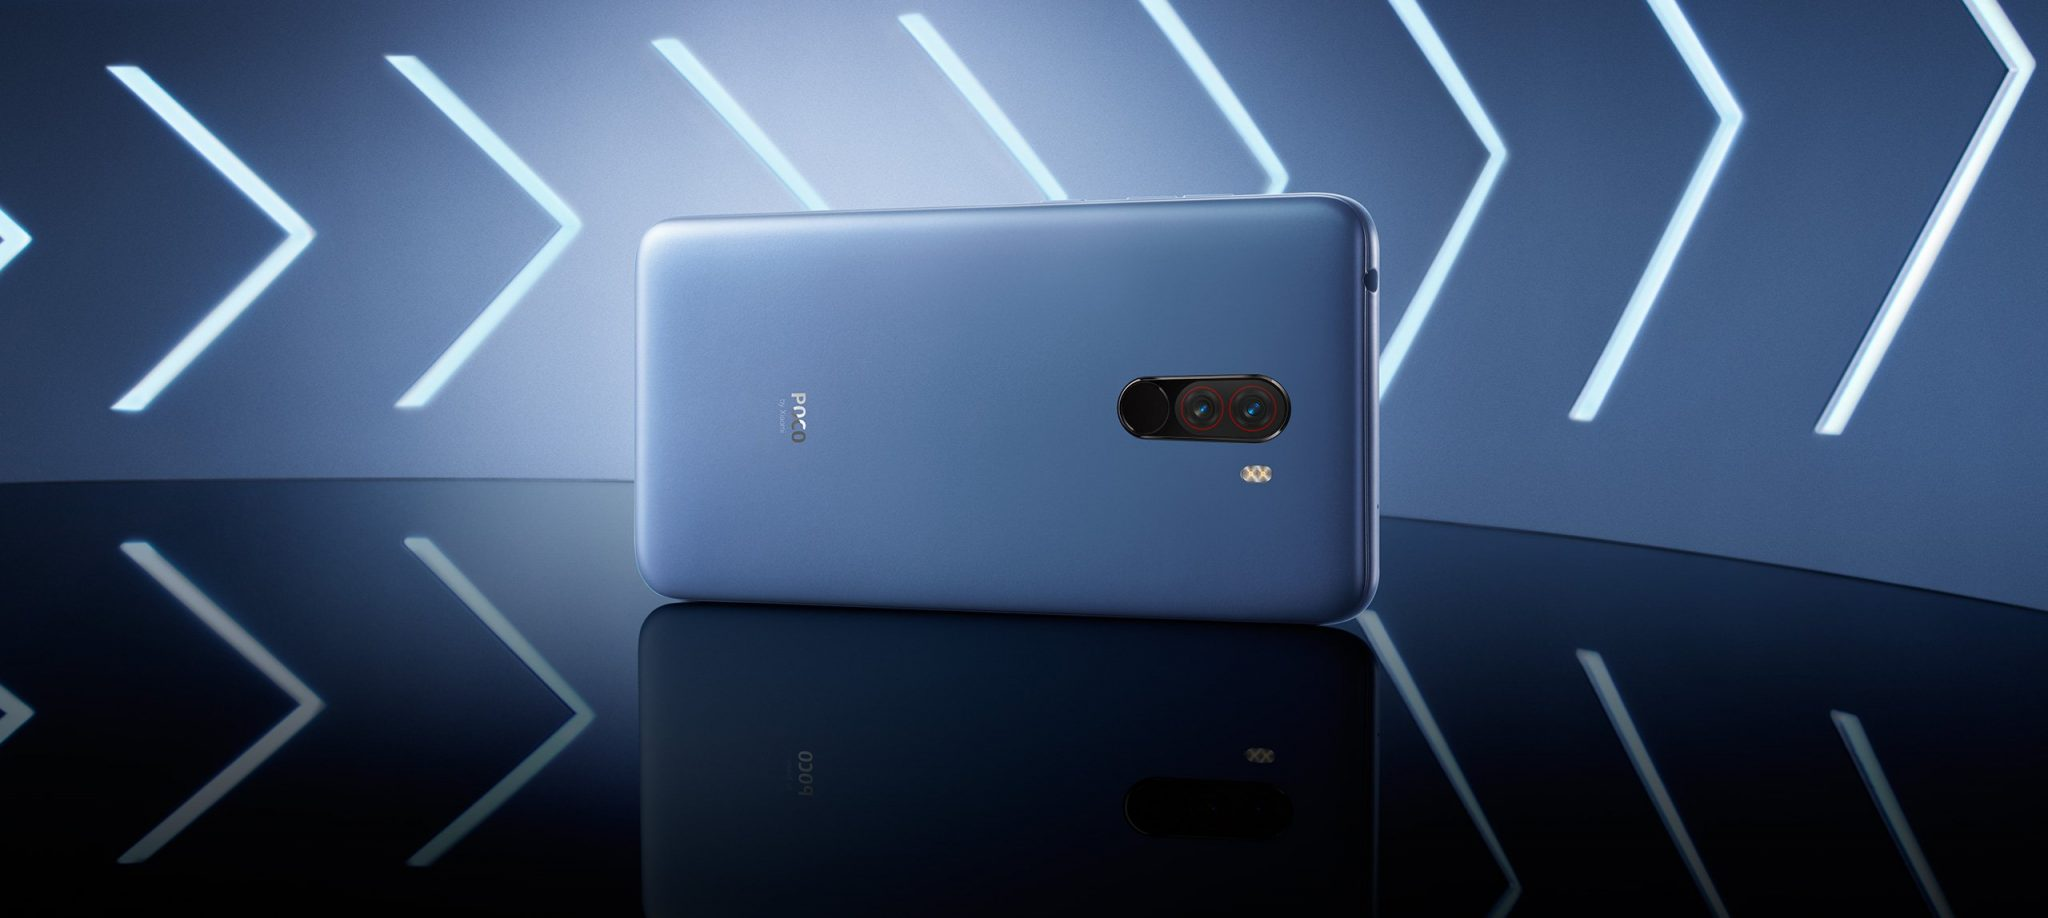 Xiaomi Poco F1 is the cheapest phone you can get with Snapdragon 845 5